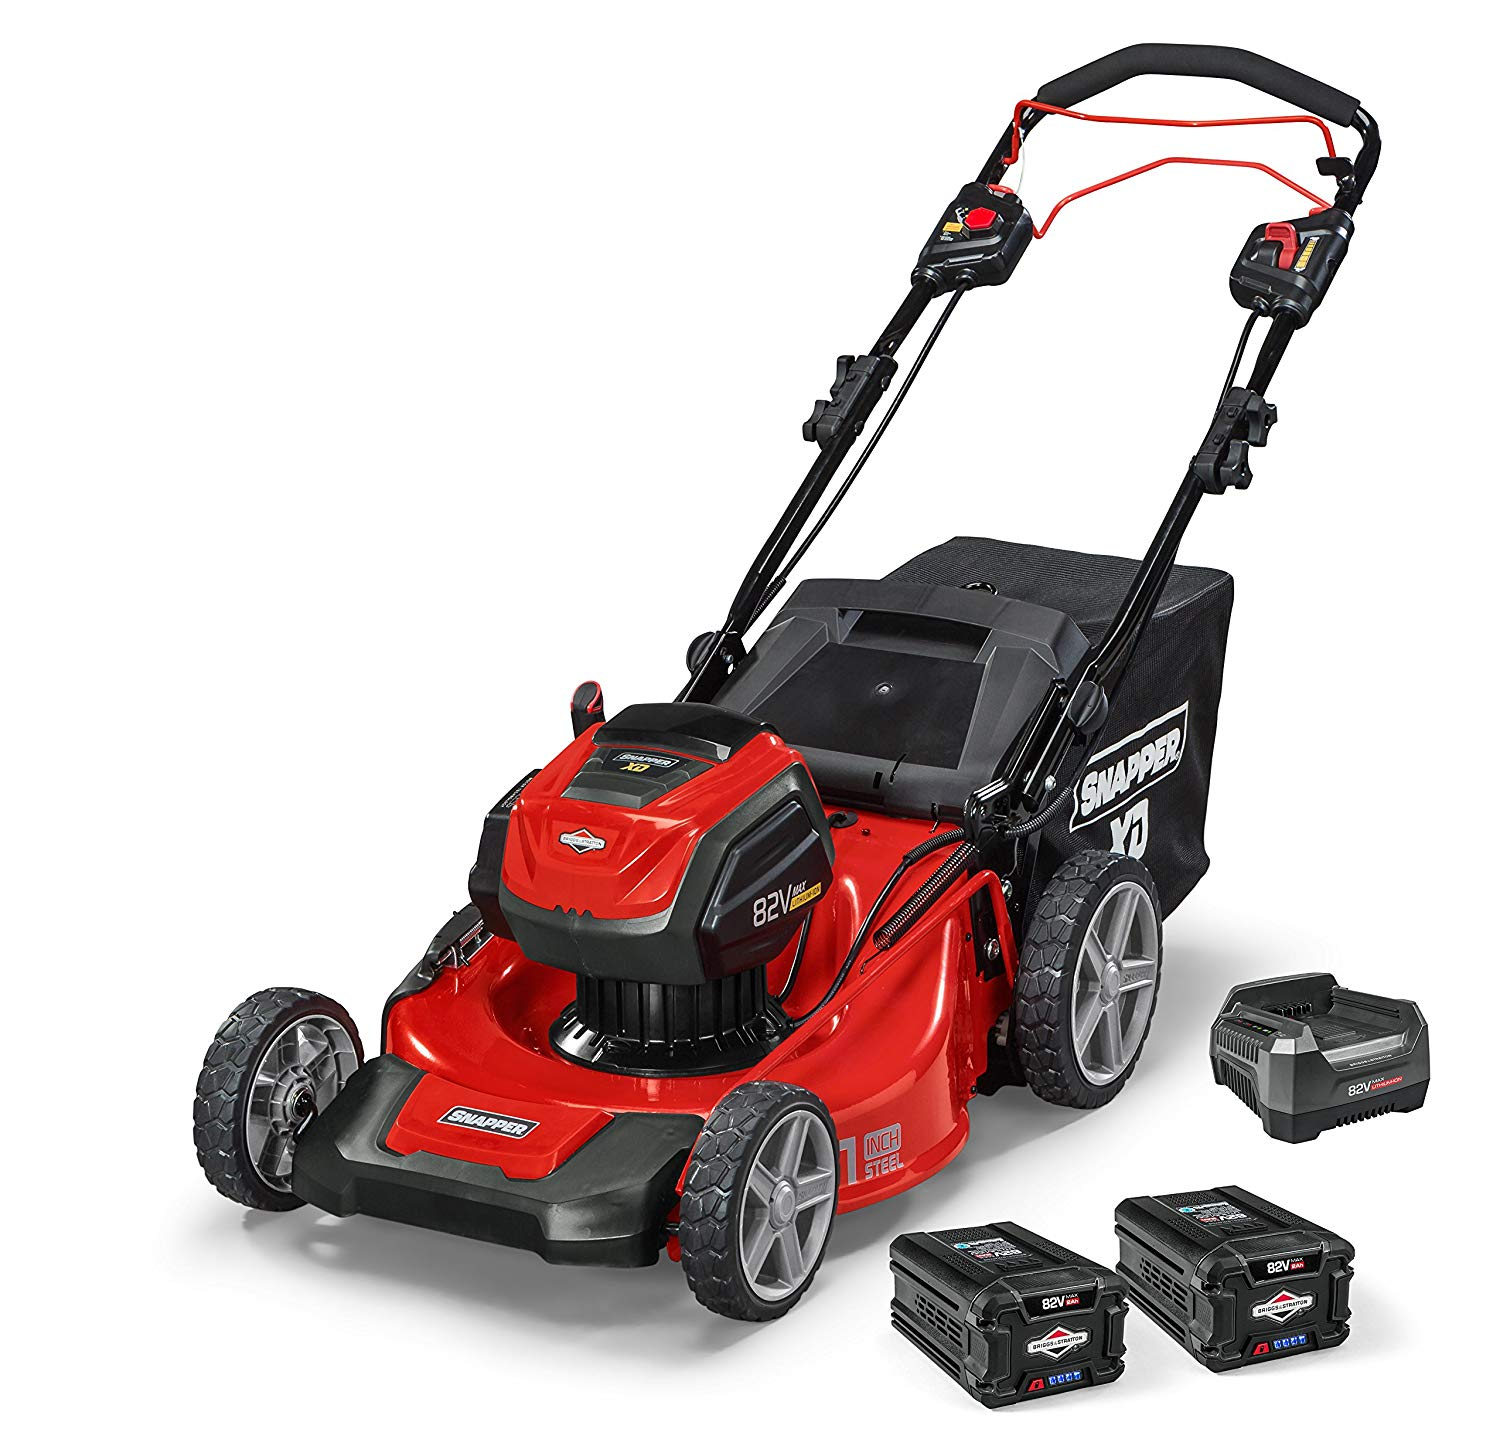 (SXD21SPWM82K) Electric Cordless Self-Propelled Lawnmower from Snapper